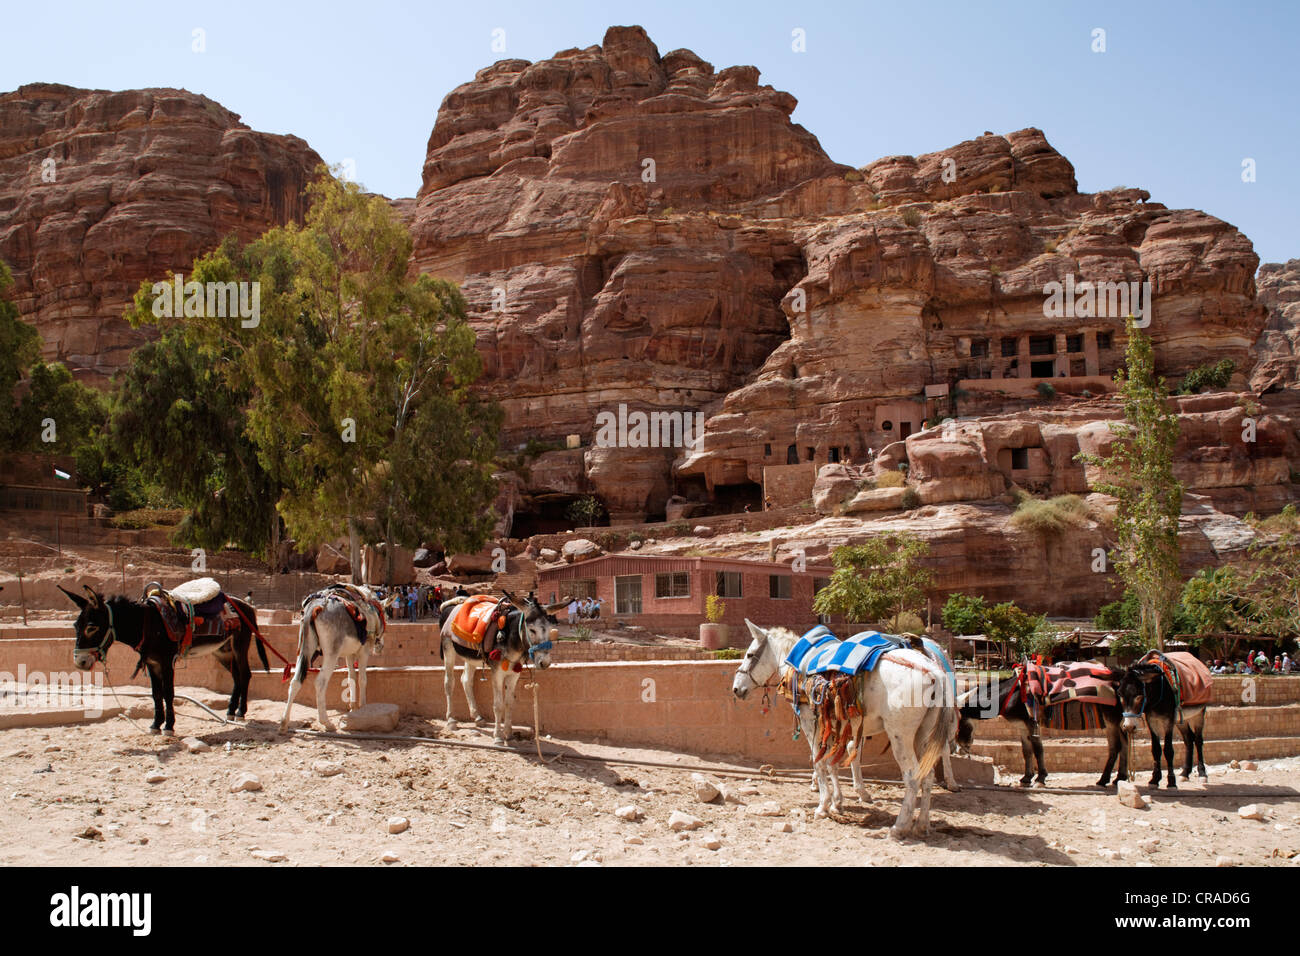 Donkeys, trees and a restaurant, Petra, the capital city of the Nabataeans, rock city, UNESCO World Hertage Site, - Stock Image